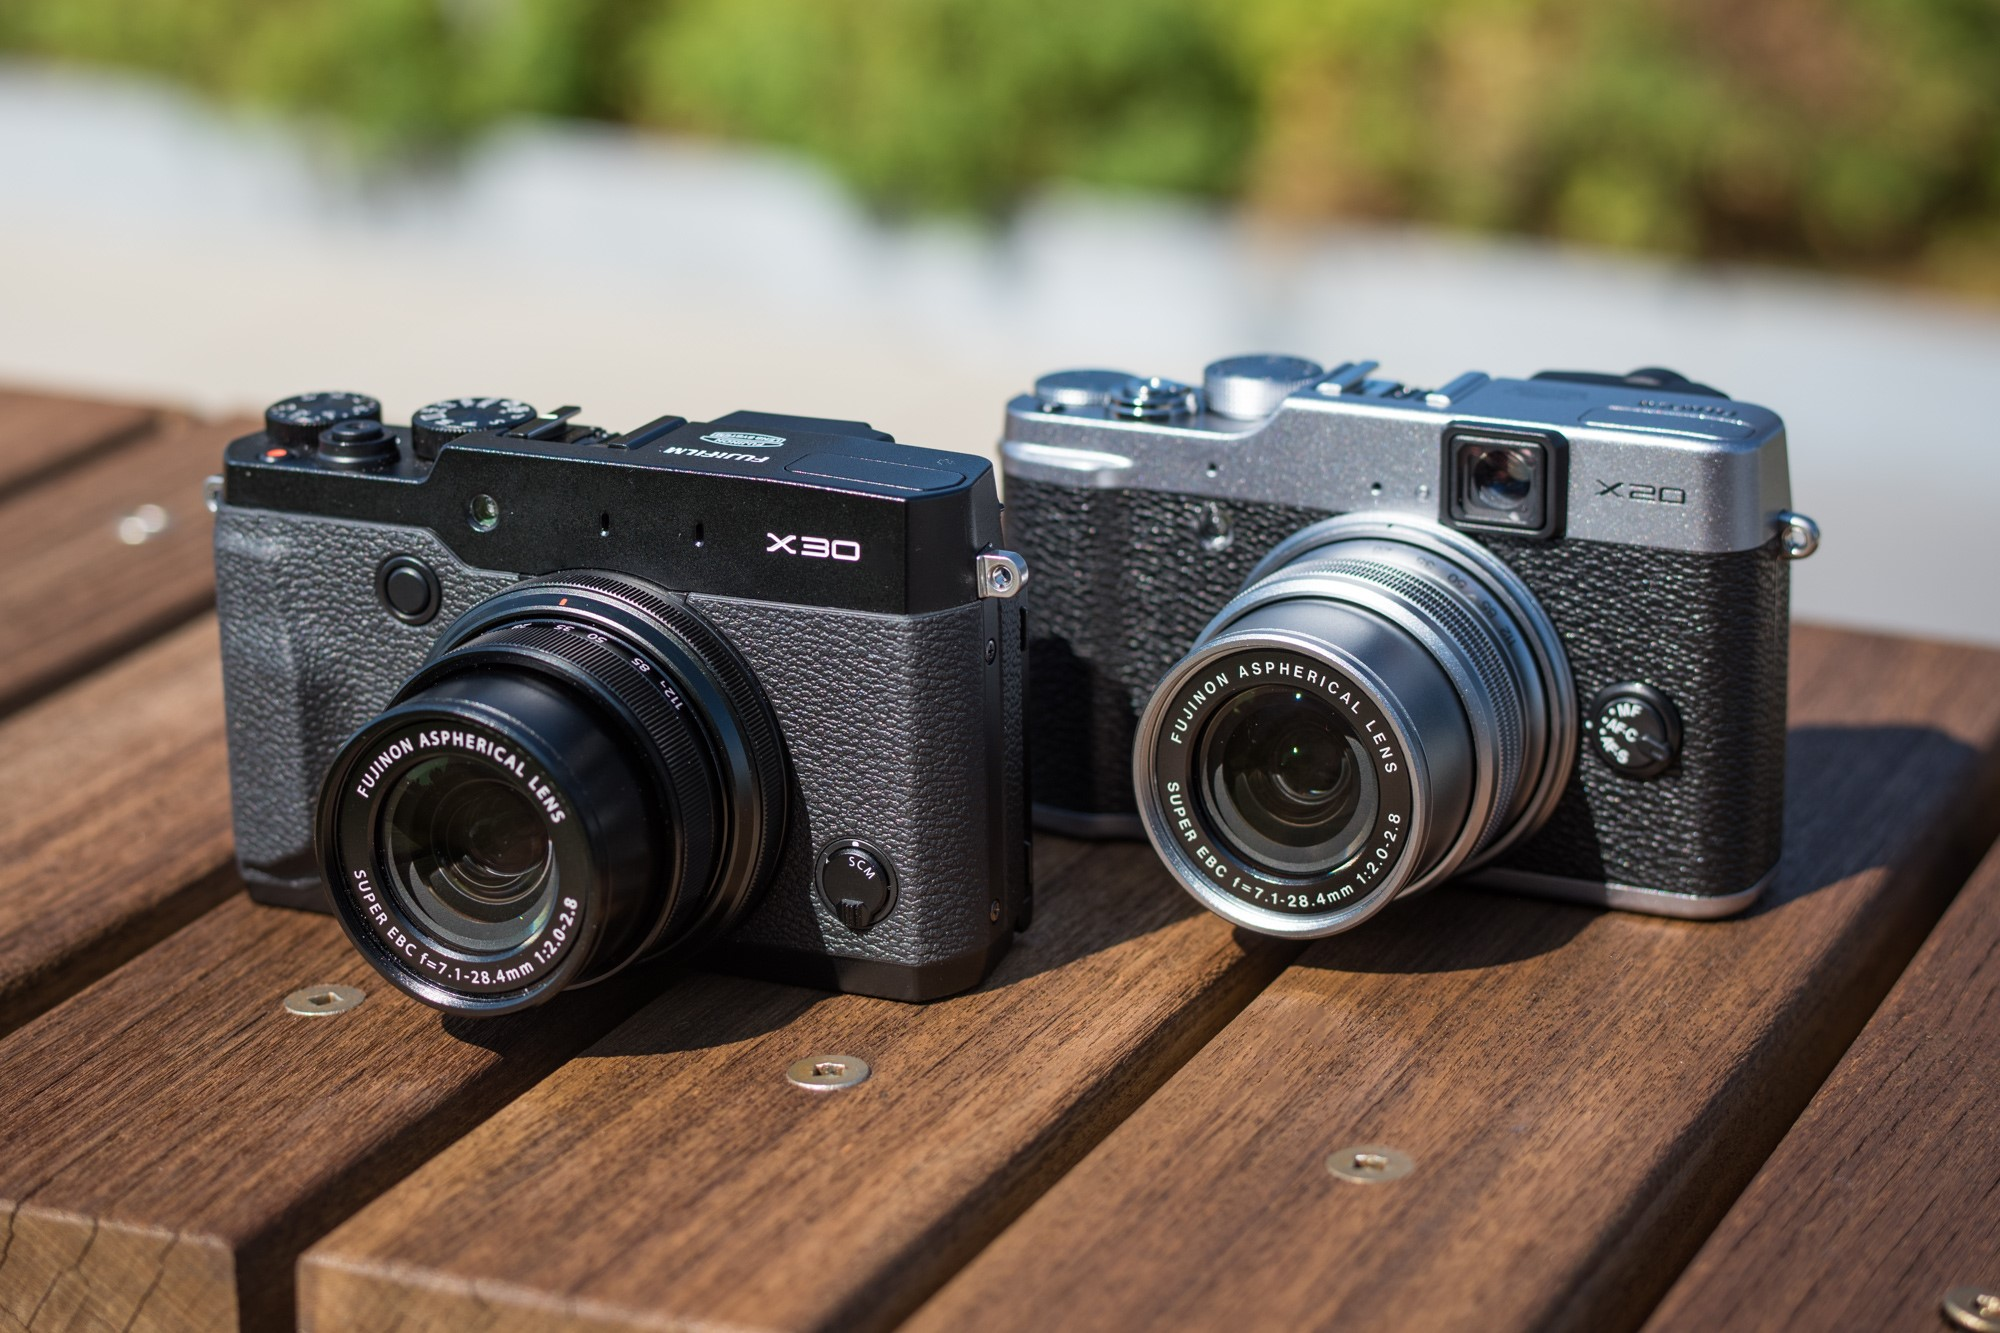 The X30 (left) positioned alongside its predecessor the X20. The two ...: www.dpreview.com/articles/9887369422/do-we-really-need-the-fujifilm...